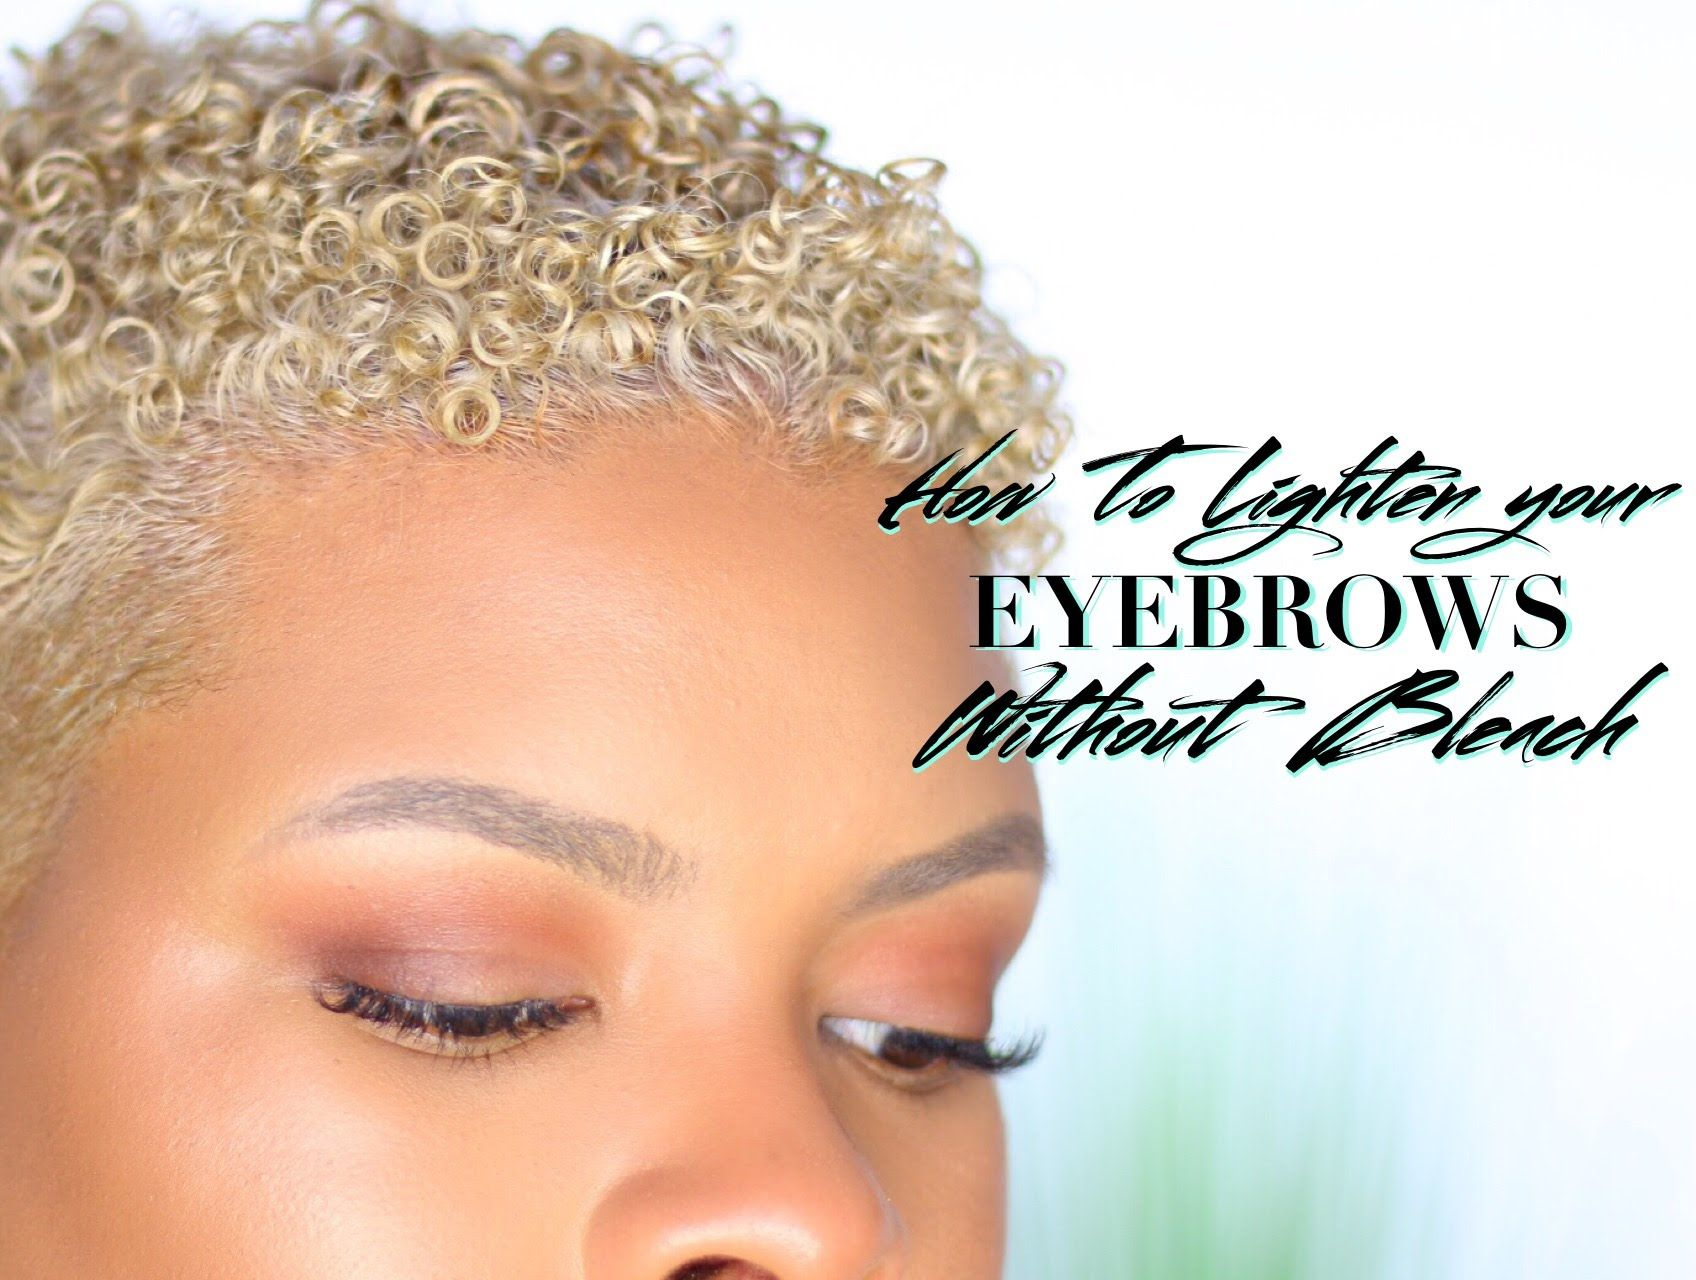 Updated Eyebrow Routine How To Lighten Eyebrows Without Bleach